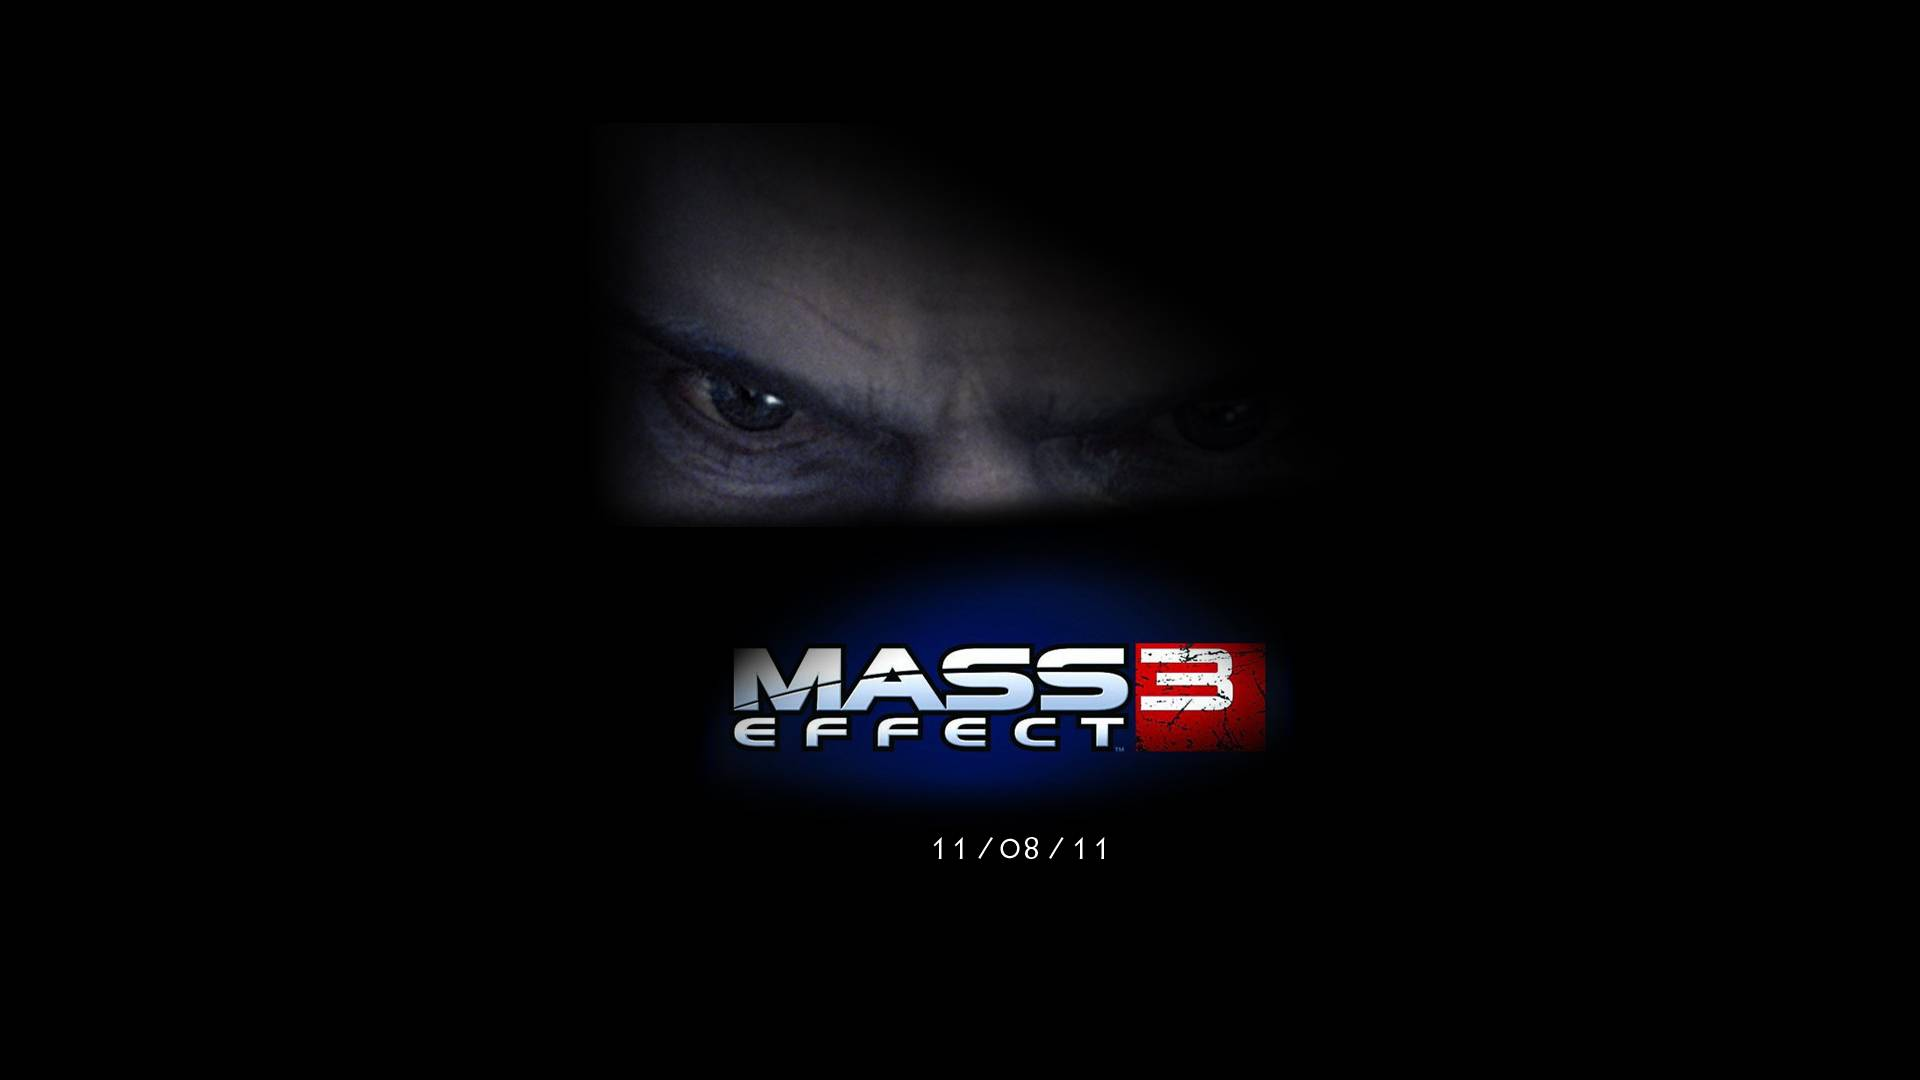 ps3 wallpapers 1080p mass - photo #16